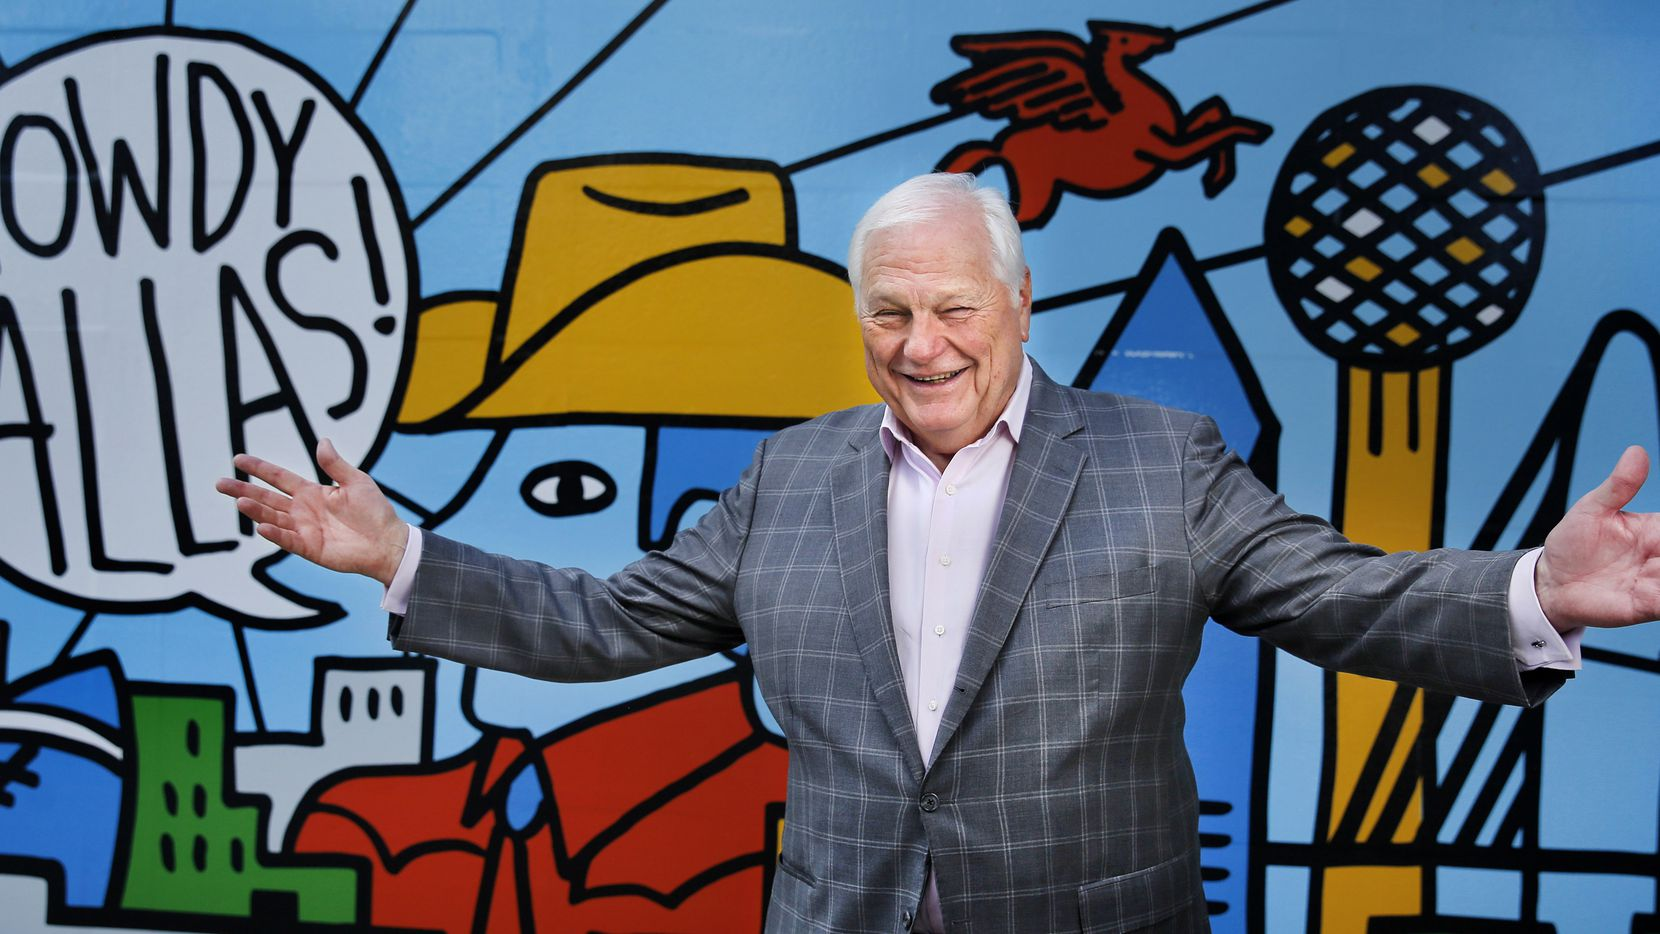 """The Victory Park backdrop for this 2021 photo of WFAA-TV sports anchor Dale Hansen should say """"Farewell,"""" not """"Howdy."""" Hansen retires this week after four decades dominating in local TV news."""